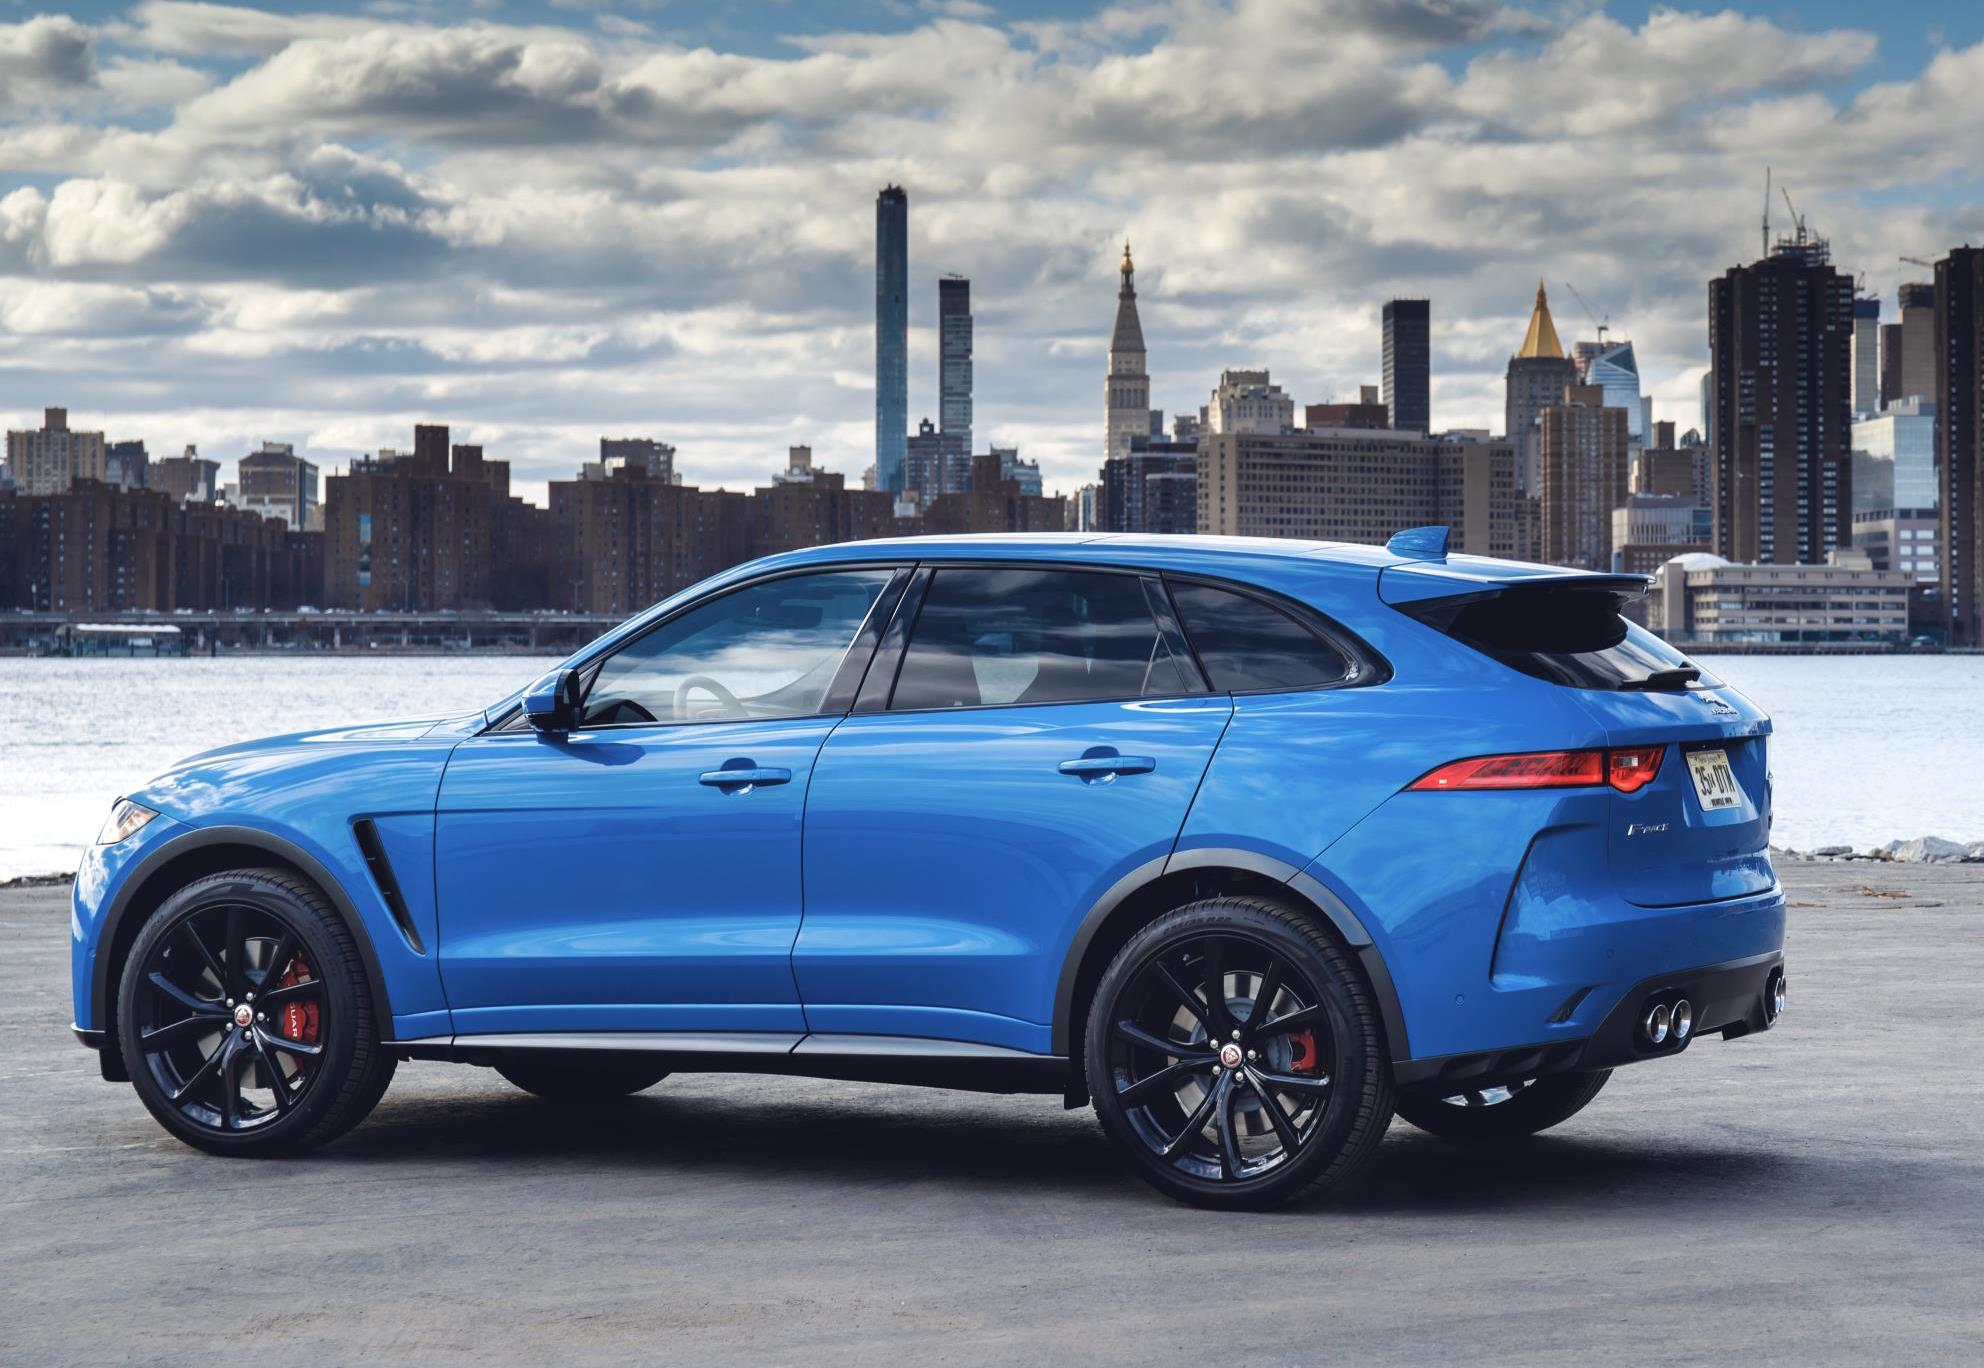 my2019 jaguar f pace announced boosted safety tech performancedrive. Black Bedroom Furniture Sets. Home Design Ideas